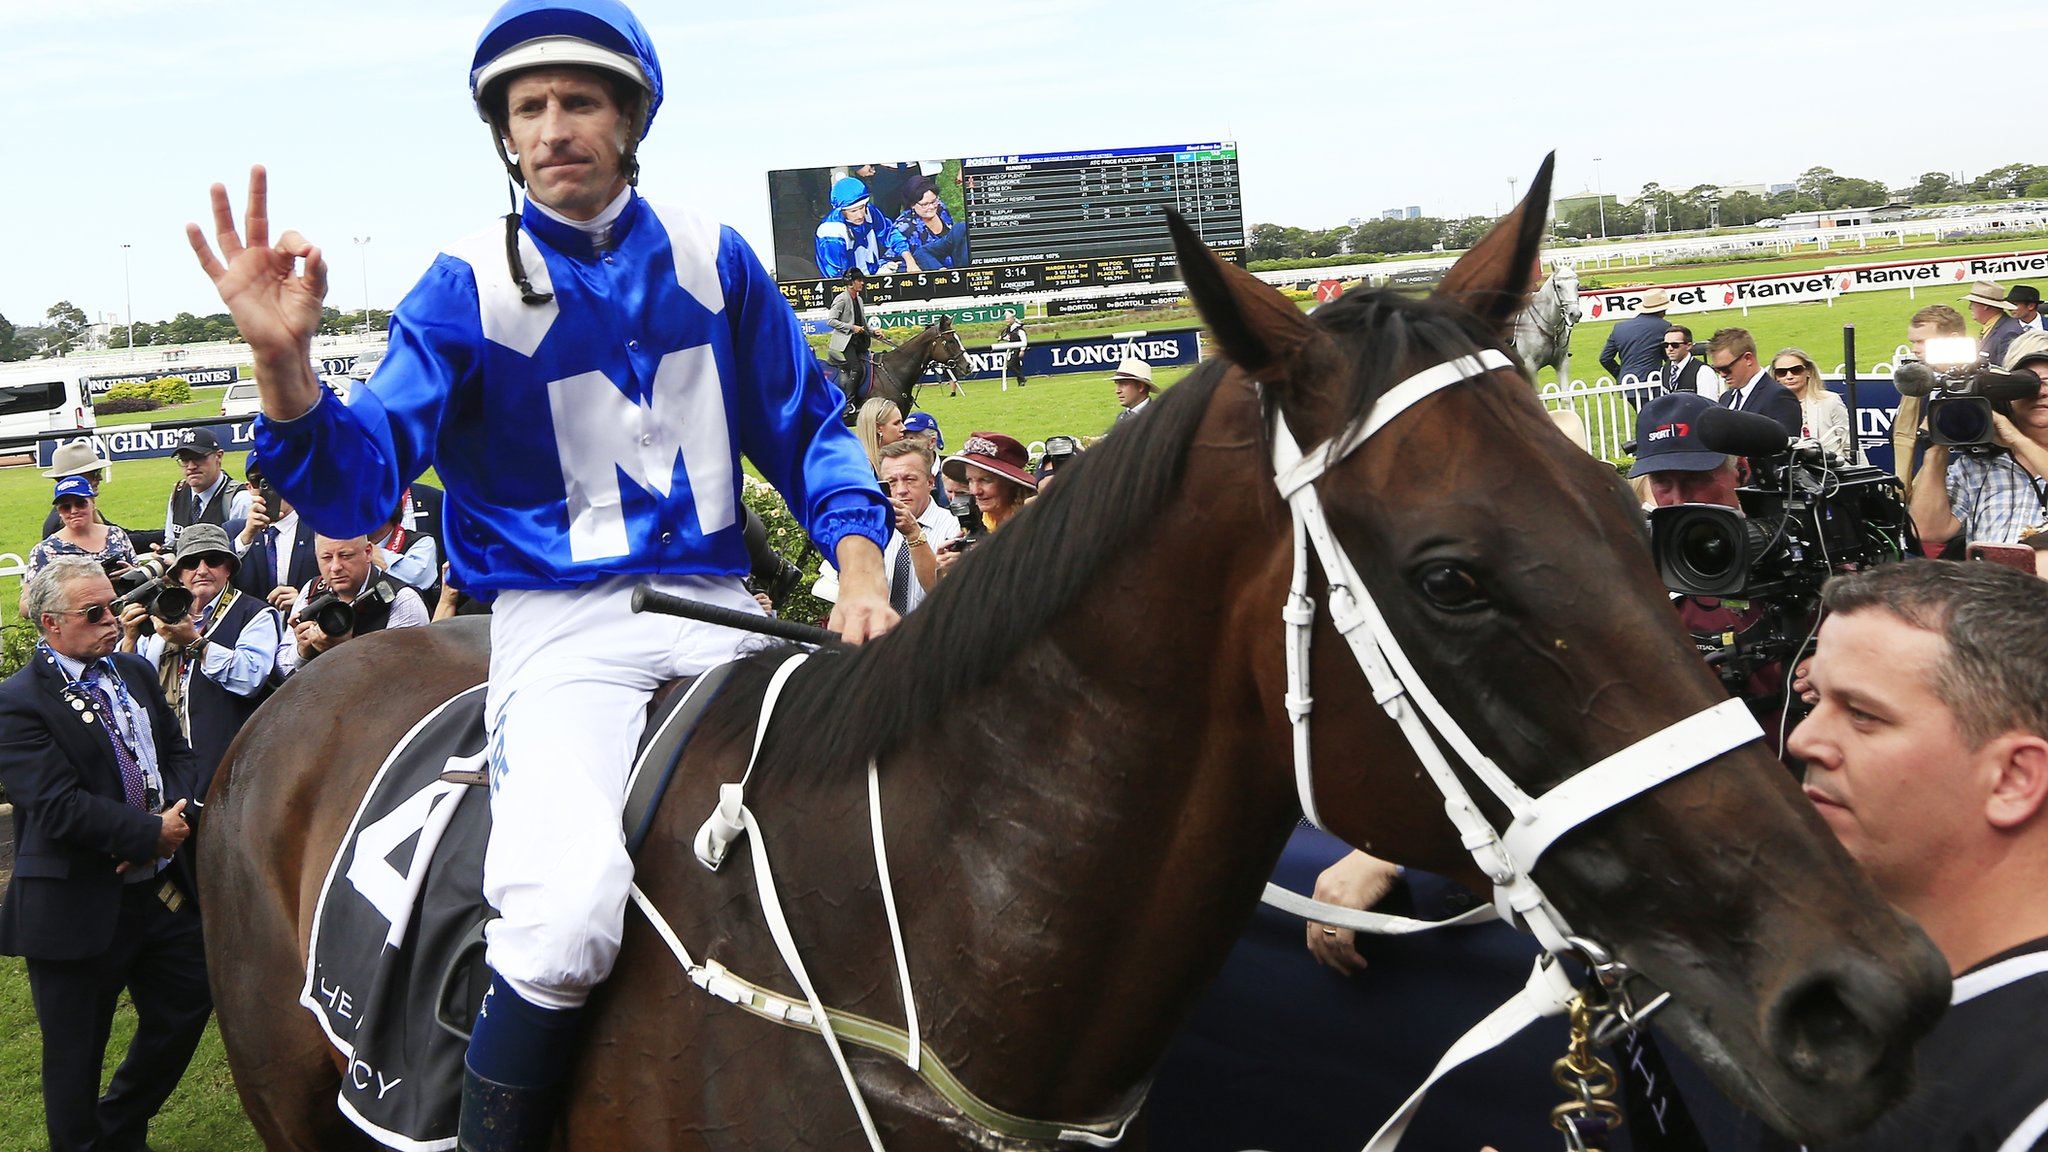 Winx: Australian horse wins 32nd consecutive race